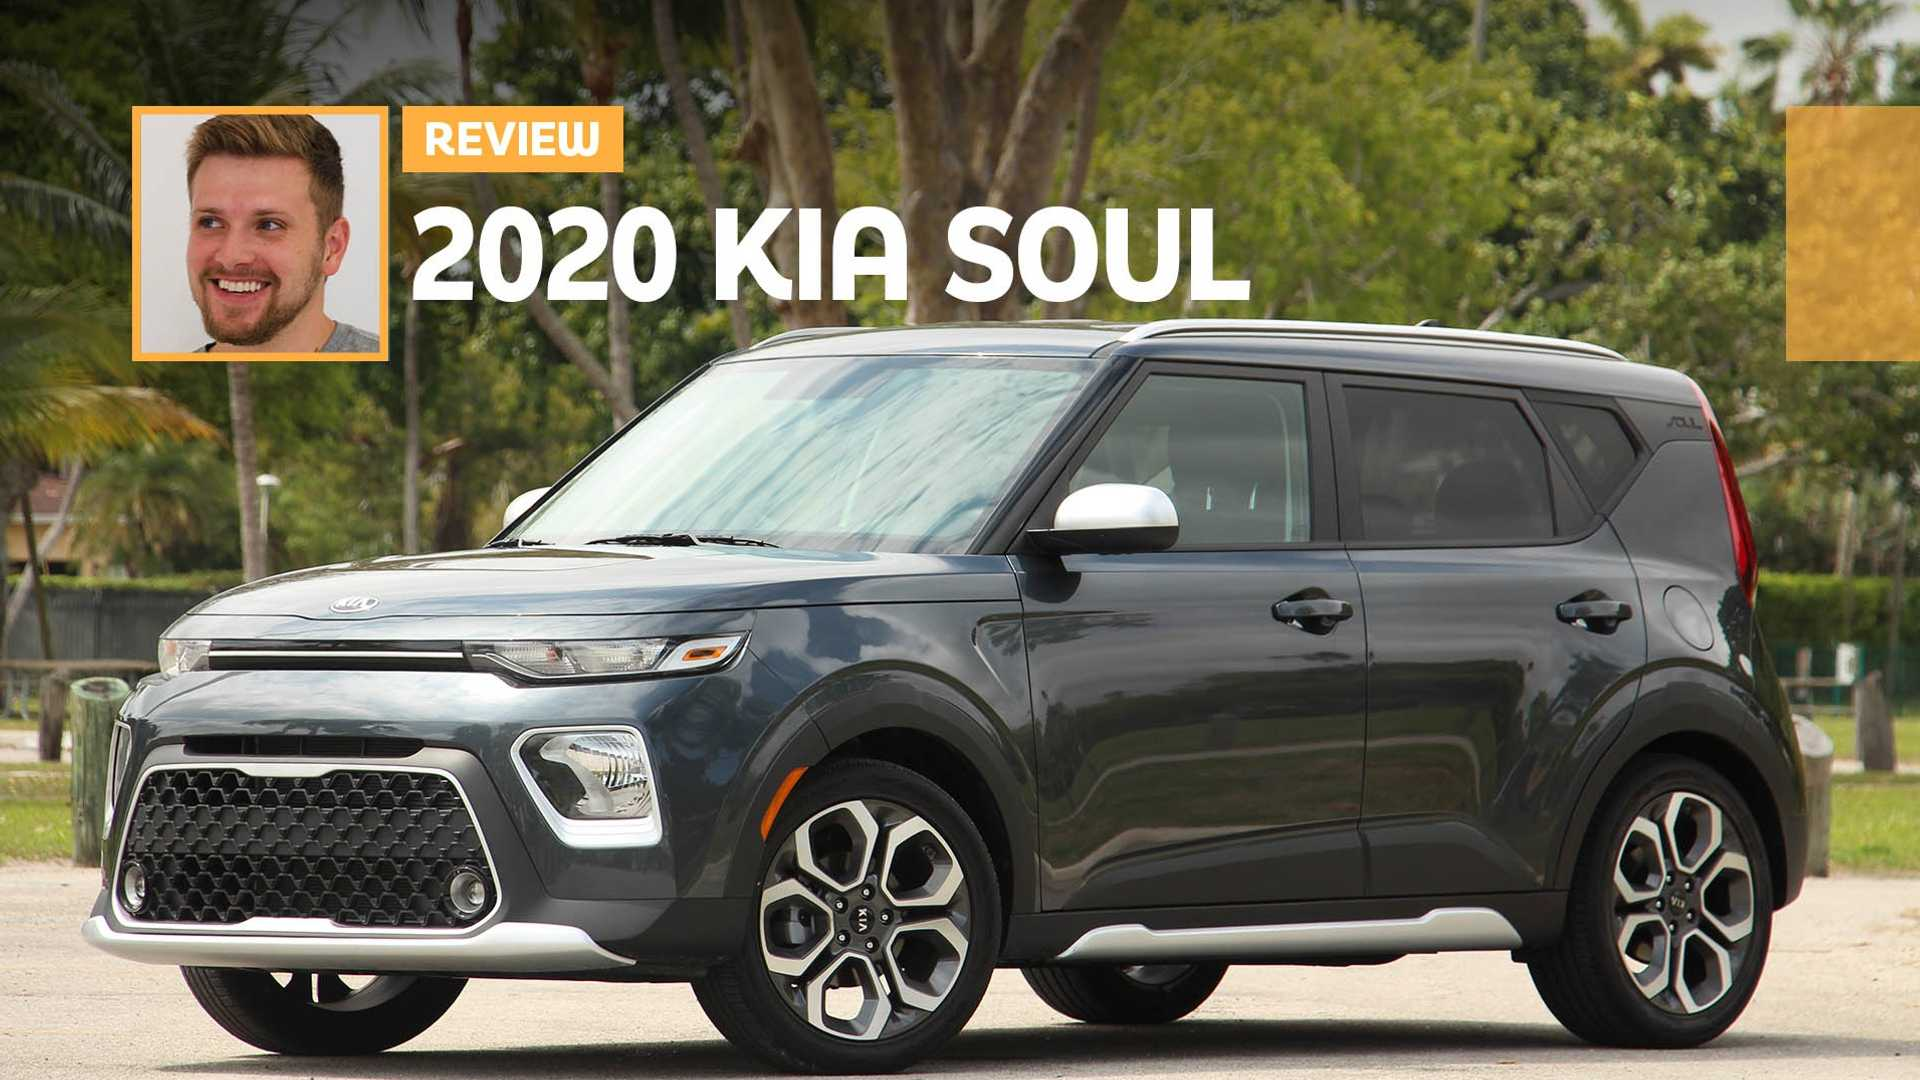 82 Best Review 2020 Kia Soul Xline Photos for 2020 Kia Soul Xline